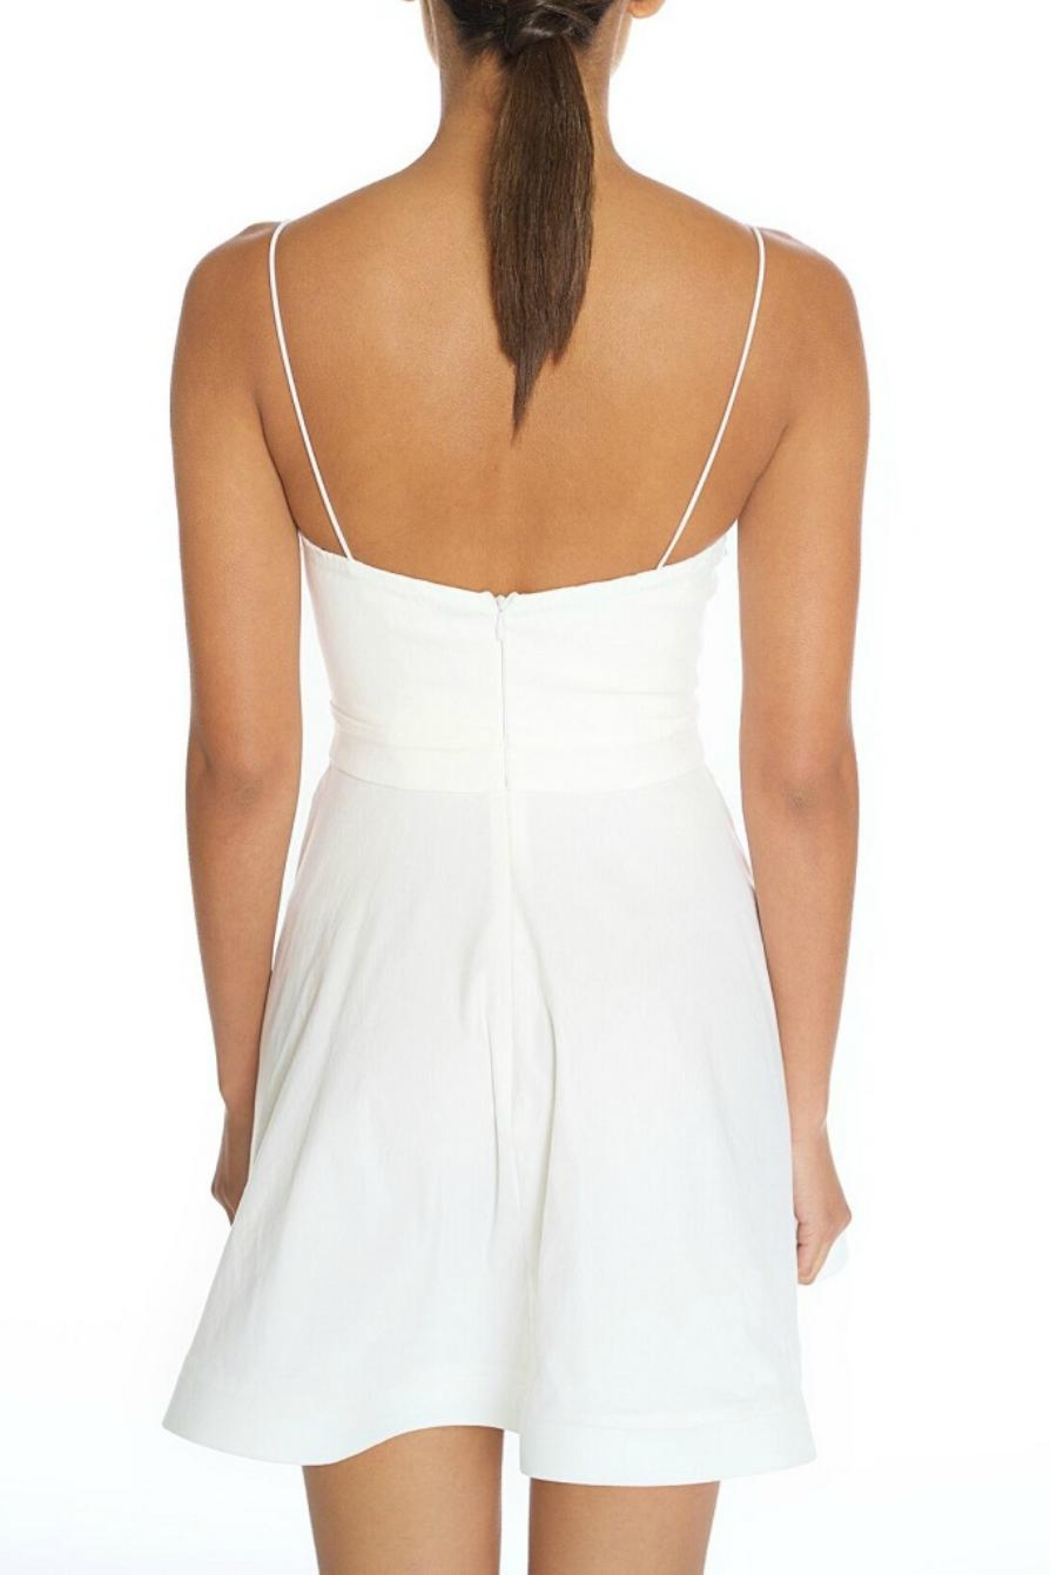 luxxel Sweetheart White Dress - Side Cropped Image